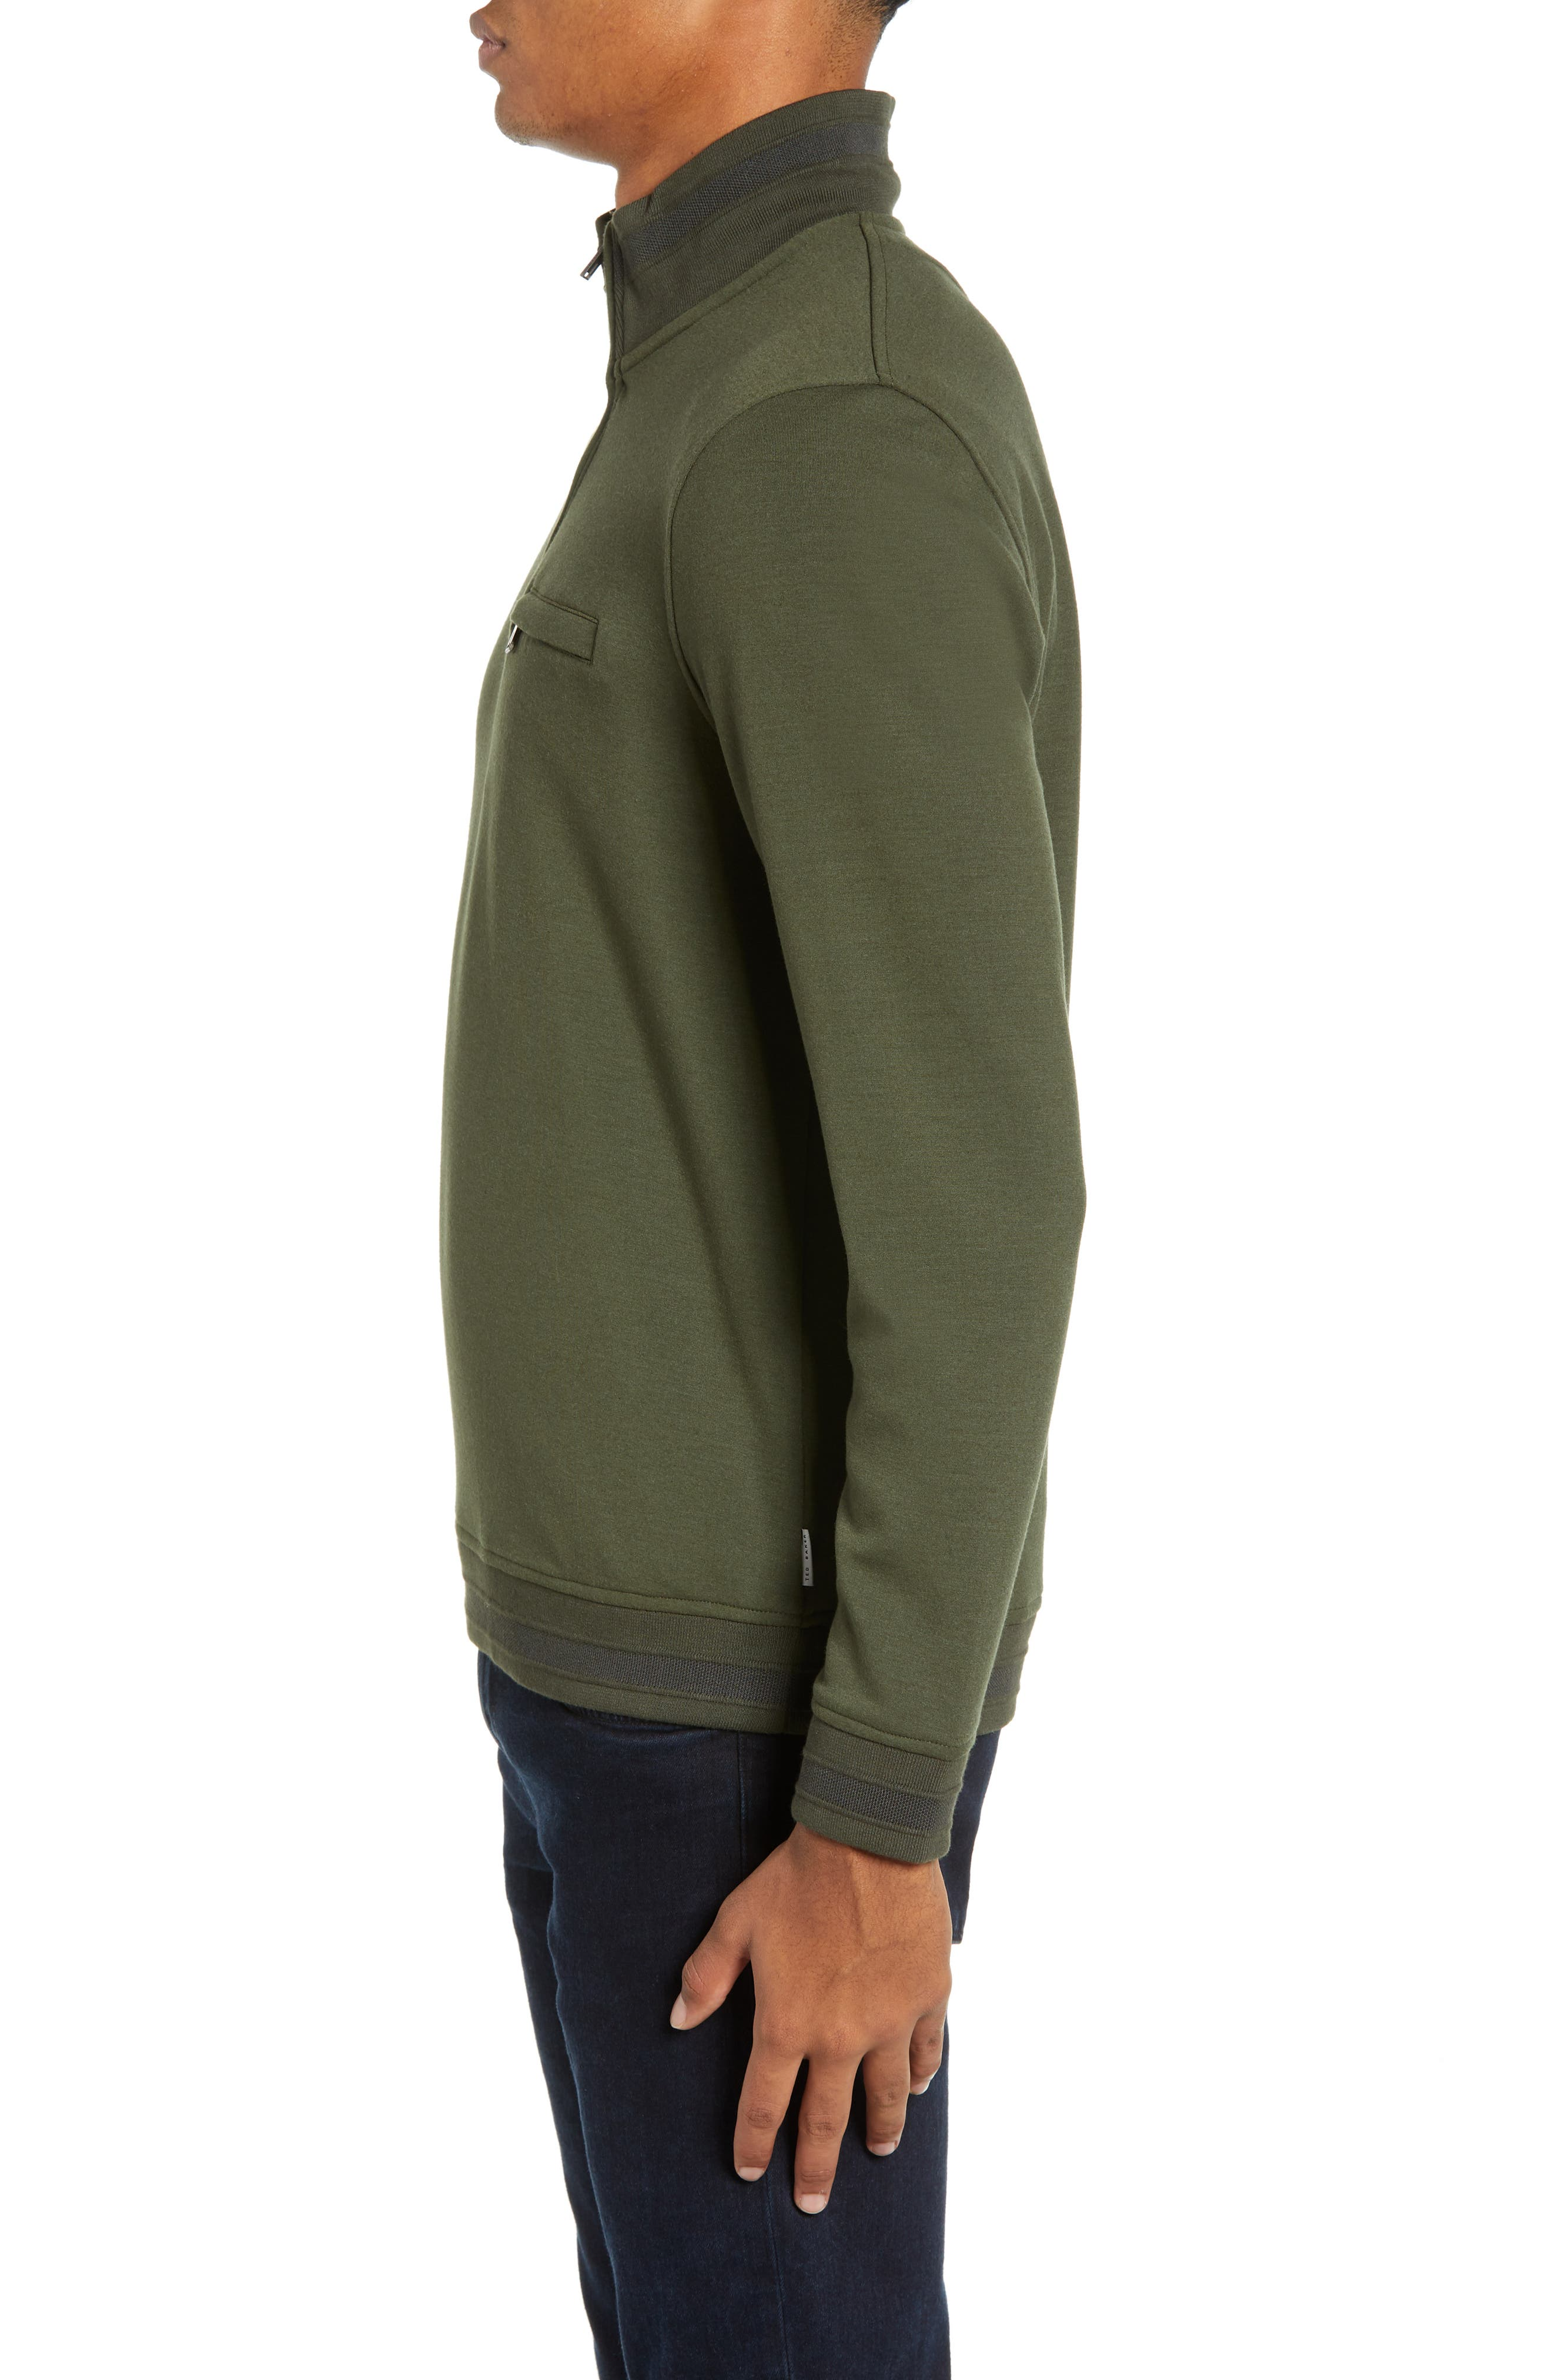 Leevit Quarter Zip Pullover,                             Alternate thumbnail 3, color,                             KHAKI